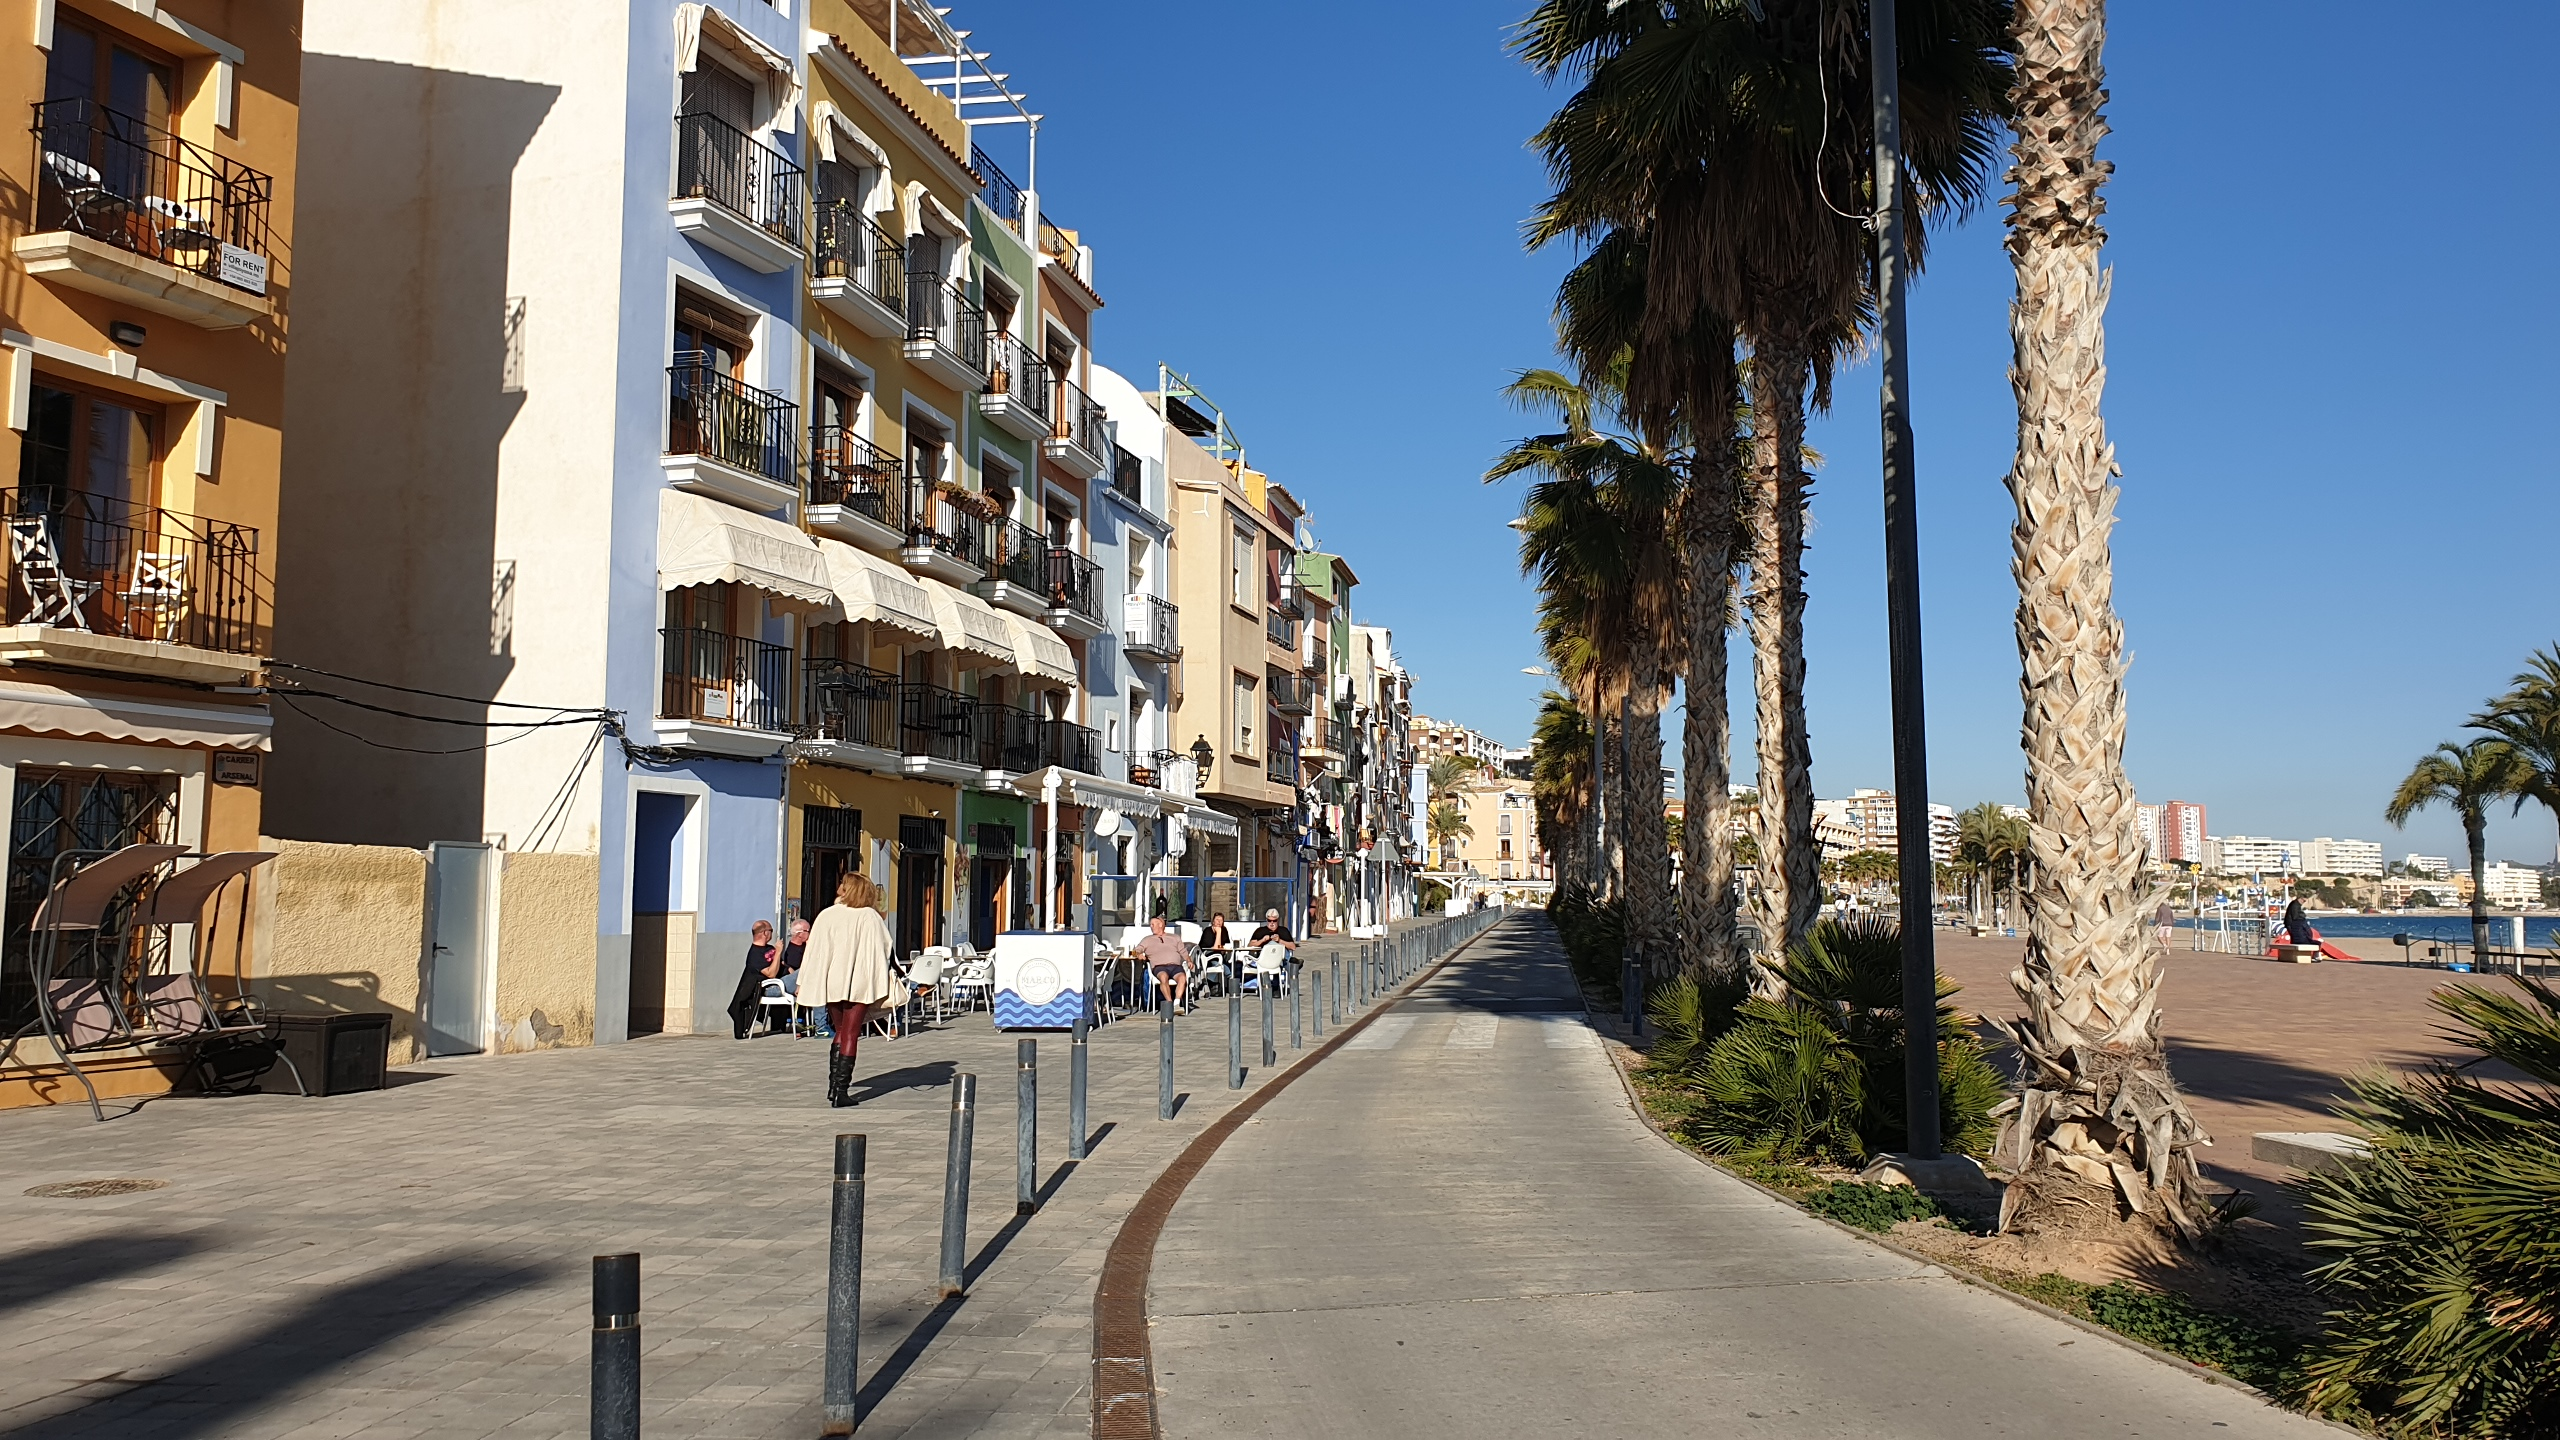 2020 – Enjoying the Costa Blanca